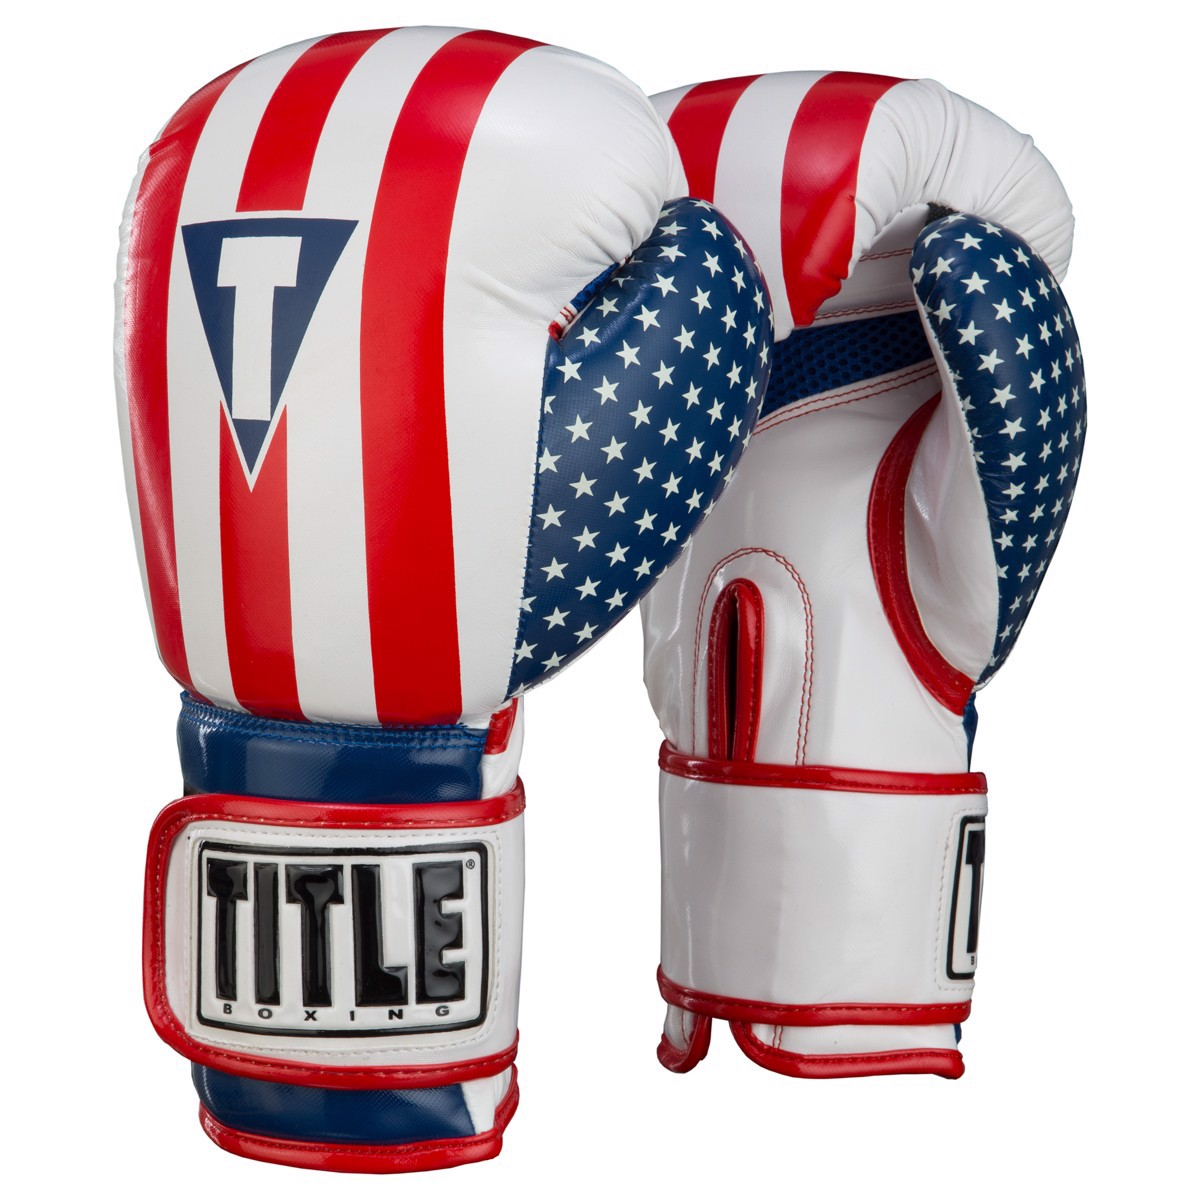 Găng tay boxing TITLE Infused Foam Combat USA Training Gloves